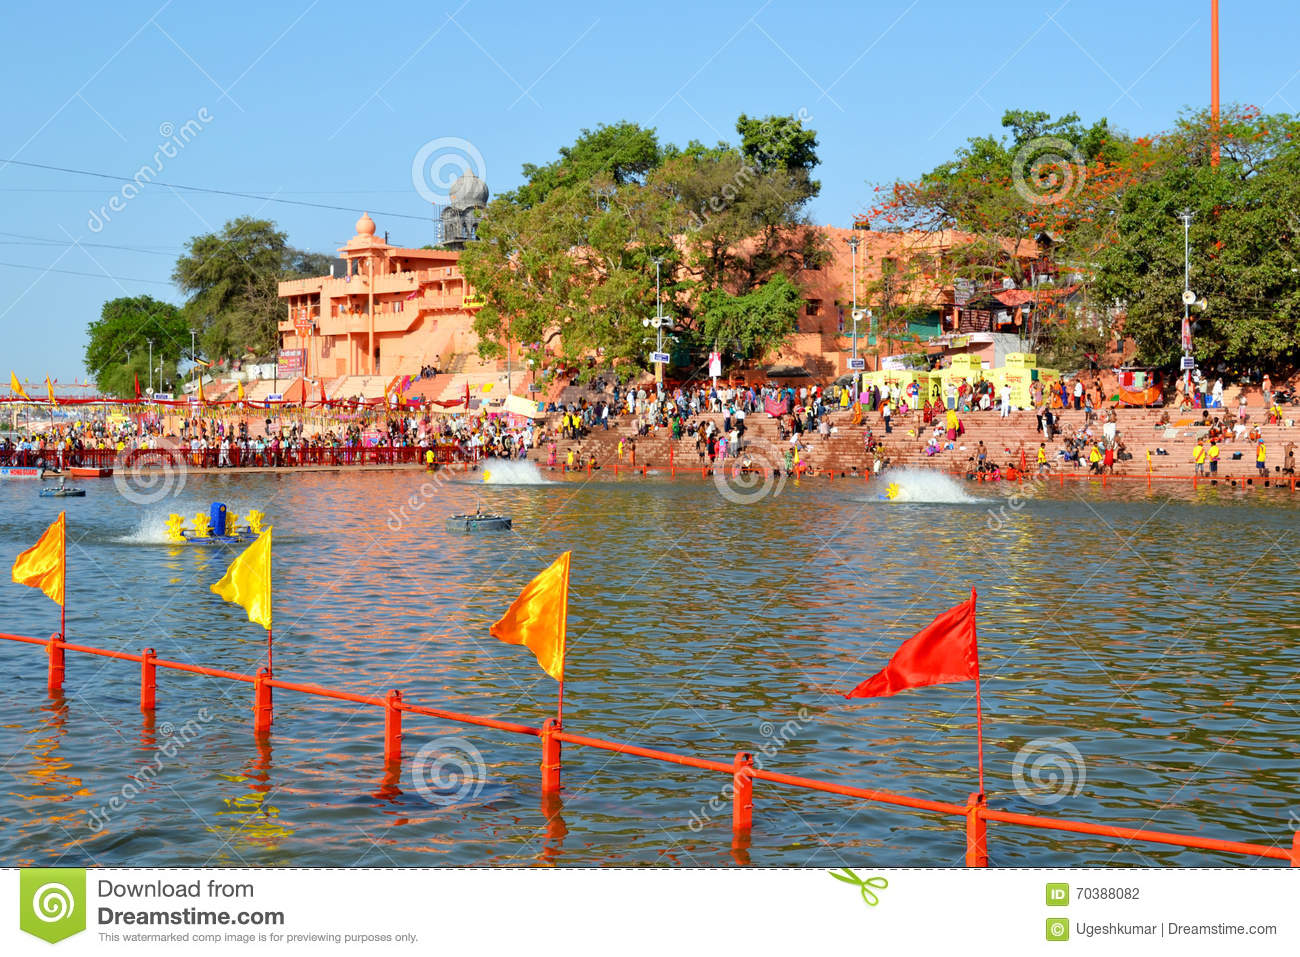 great river hindu personals Start studying ch 6 hinduism learn vocabulary, terms, and more conquering muslims used the word hindu to designate people who lived east of what great river.